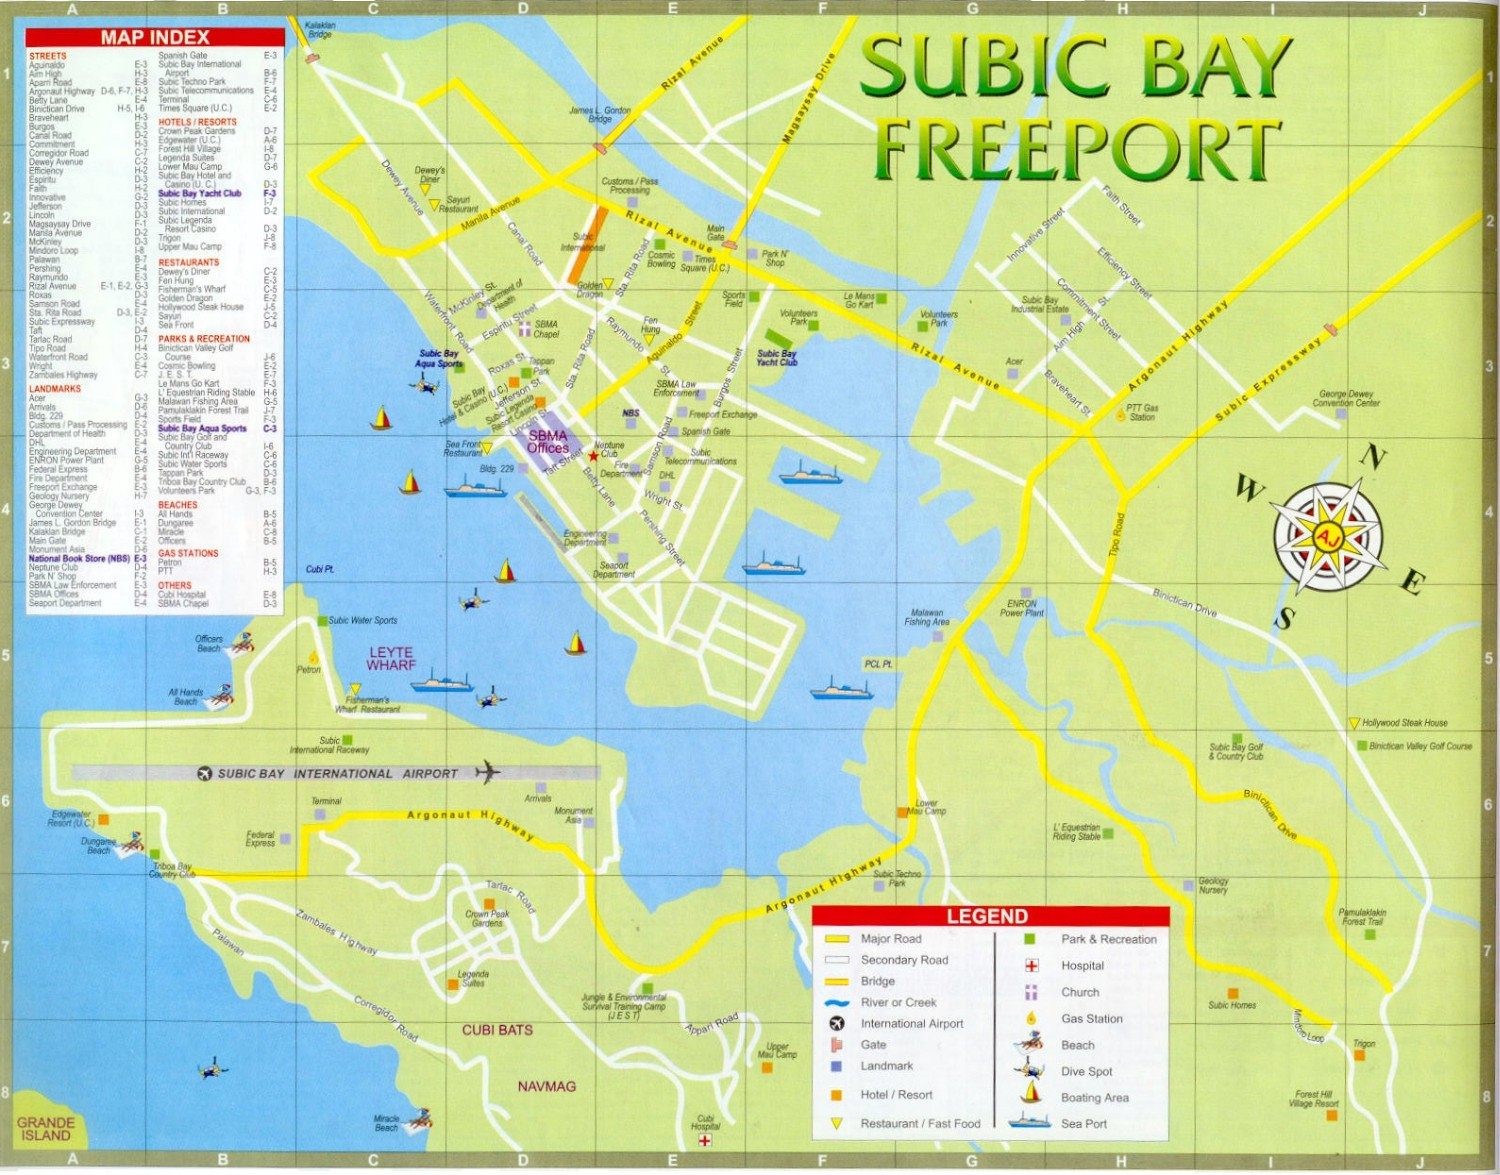 Subic Bay Located About 100